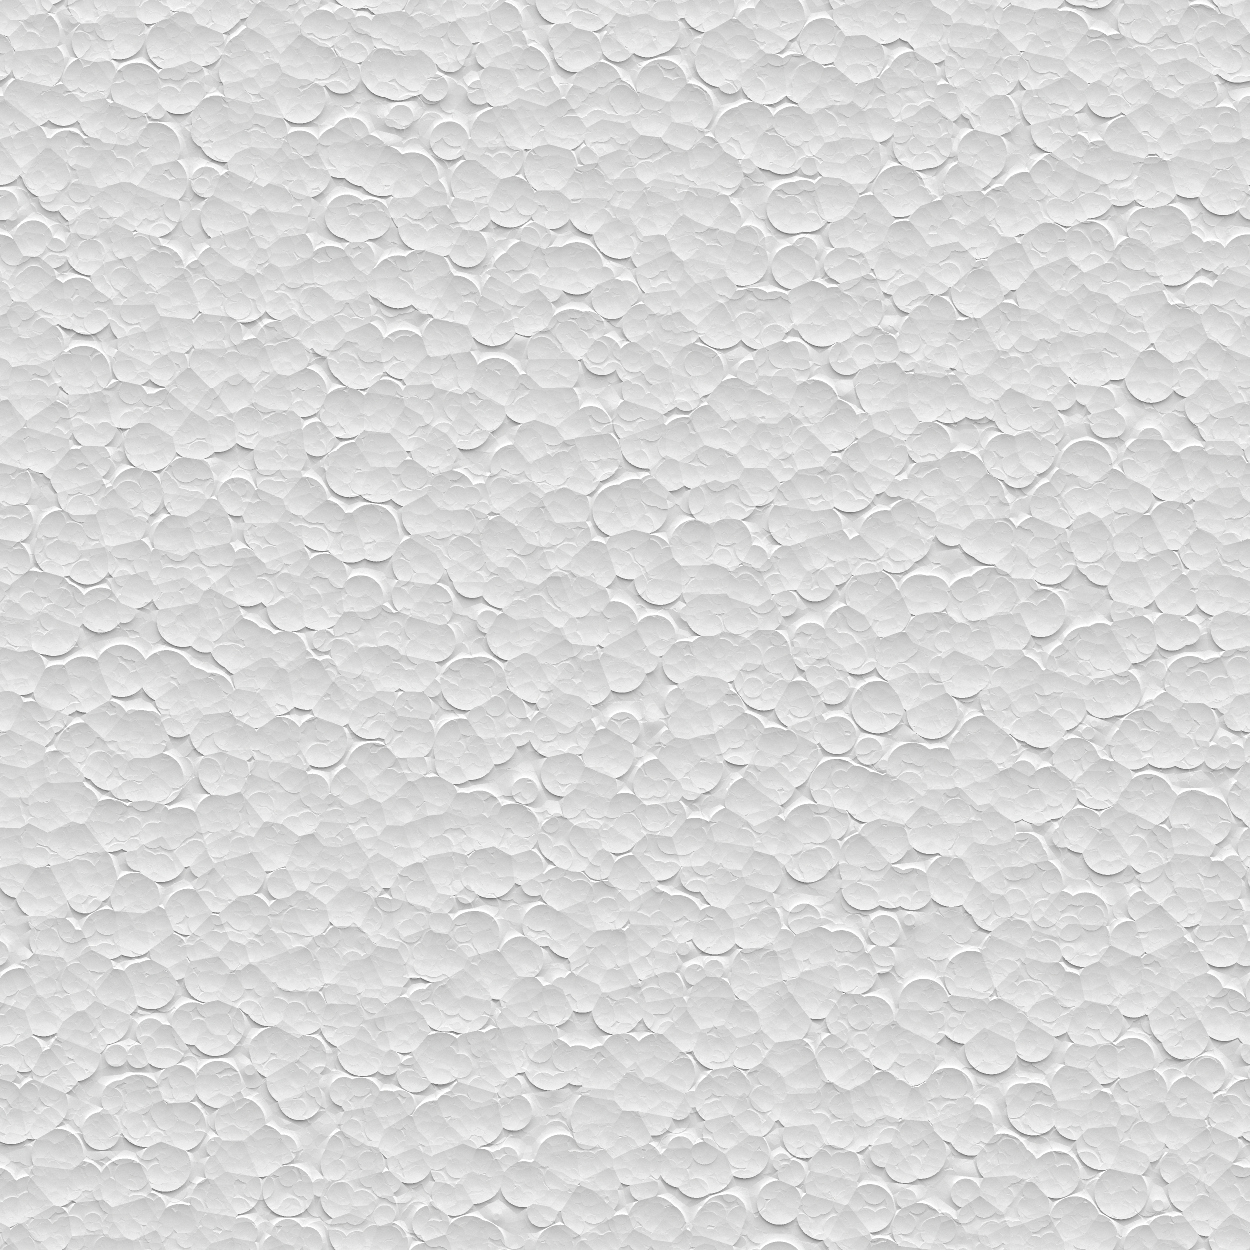 Texture of the Day: Styrofoam by brianjhinton on DeviantArt: brianjhinton.deviantart.com/art/Texture-of-the-Day-Styrofoam-119242975